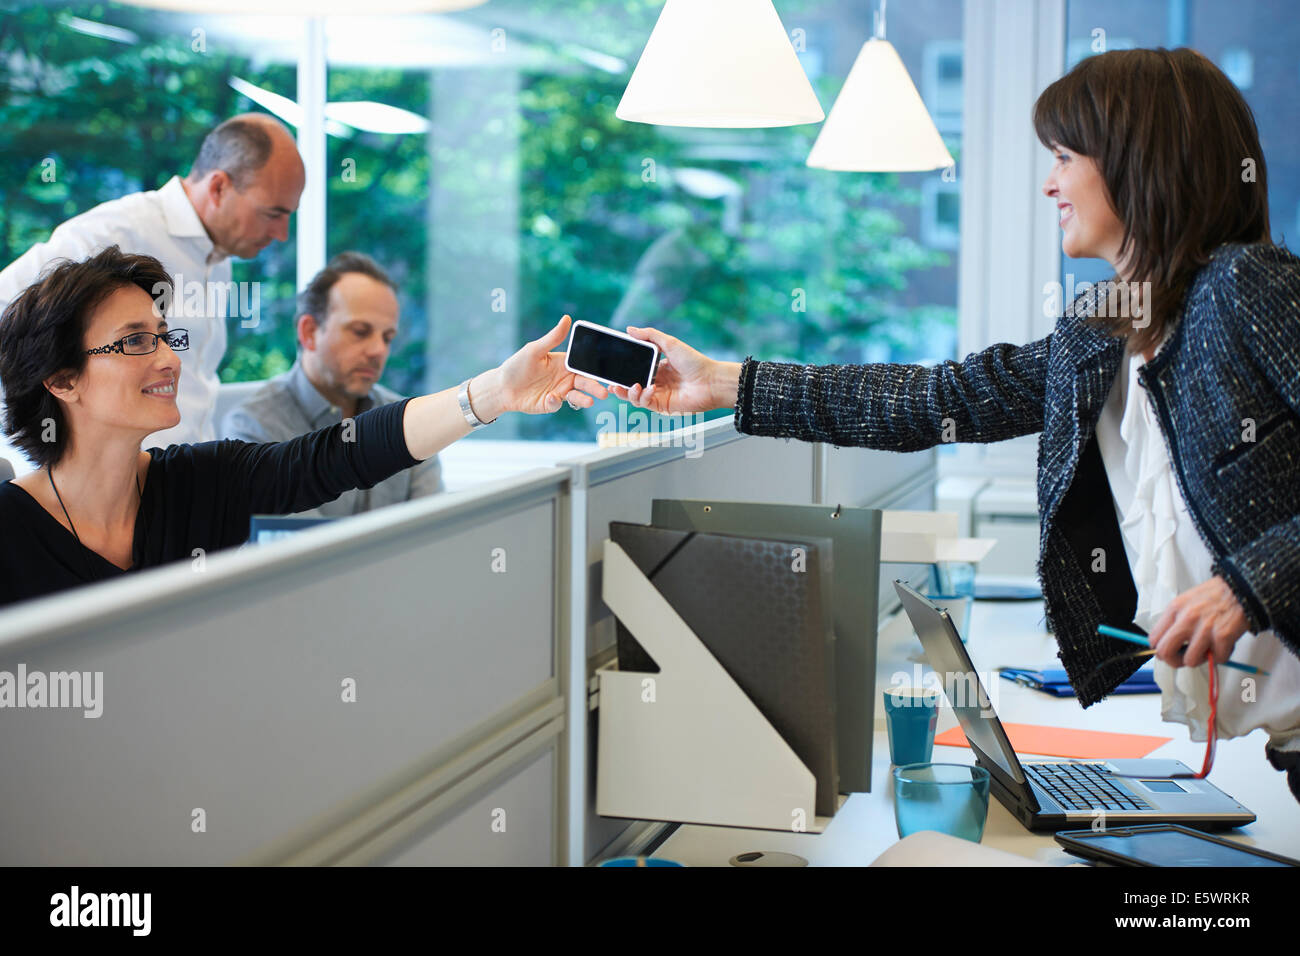 Woman passing smartphone to colleague - Stock Image